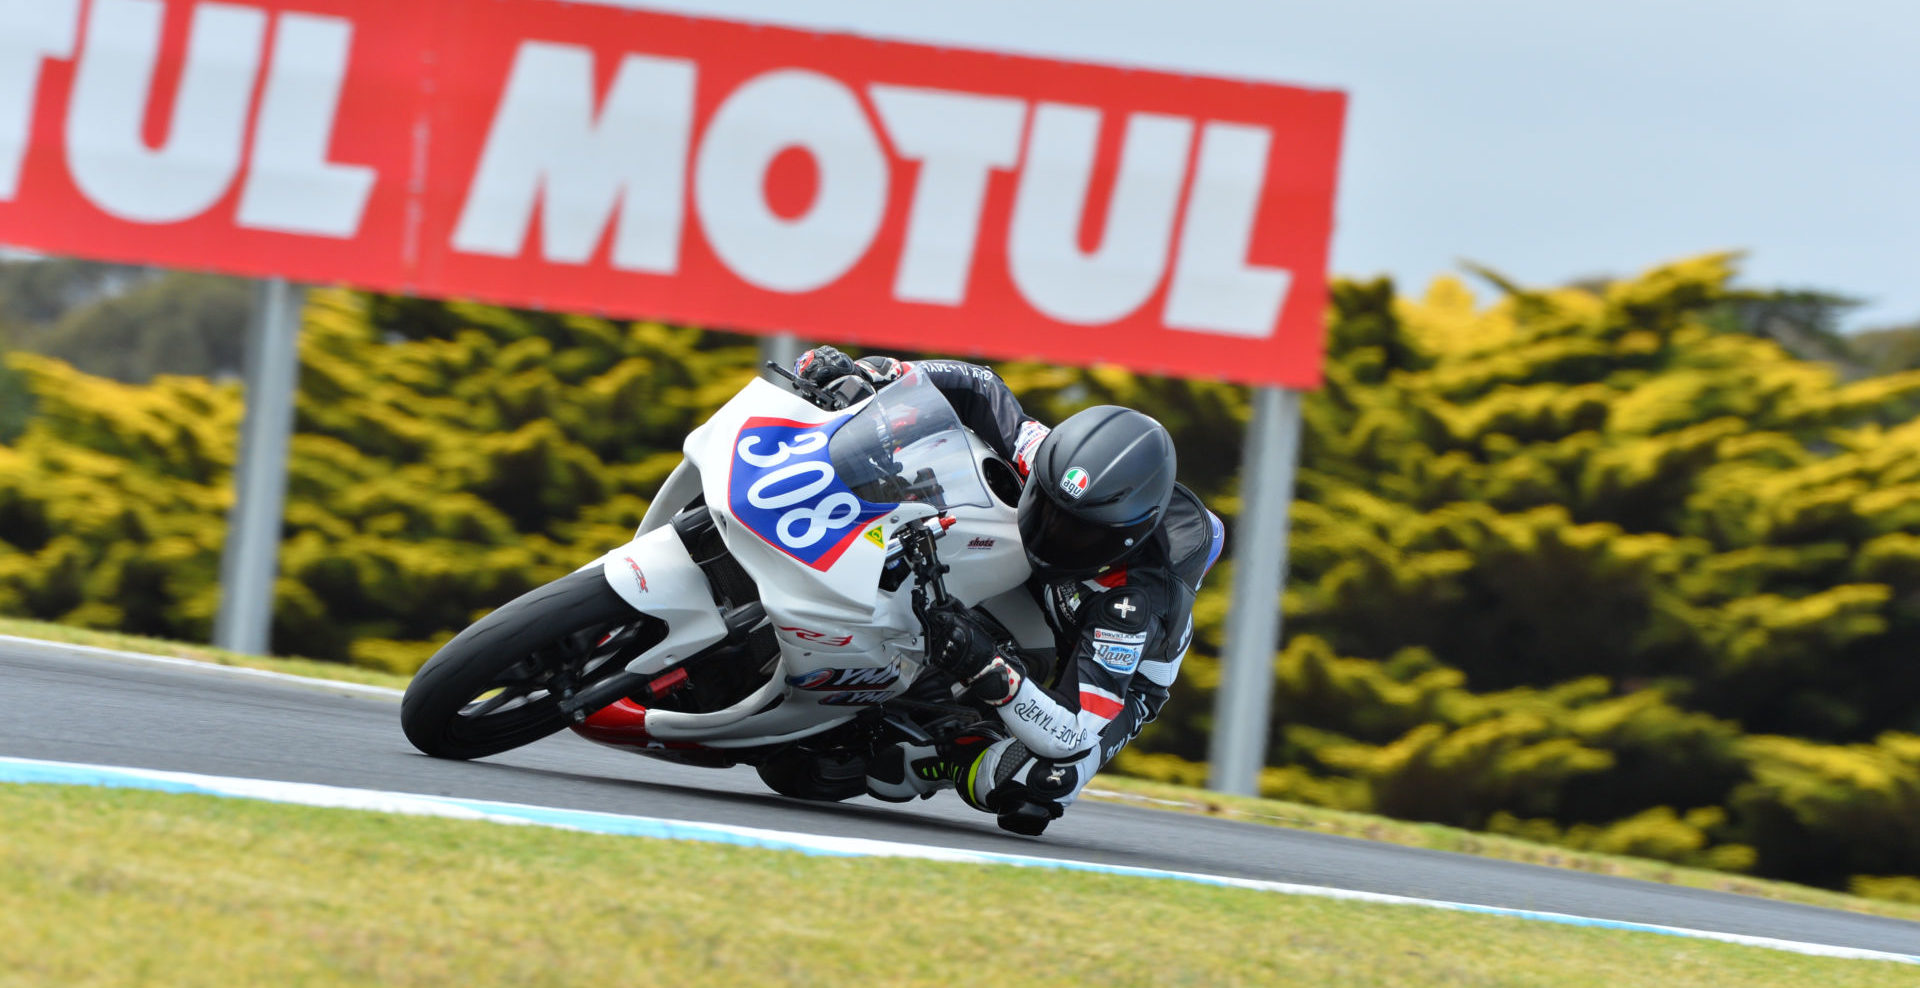 Motul is the presenting sponsor of the 2020 mi-bike Insurance Australian Superbike Championship. Photo courtesy of Motorcycling Australia.